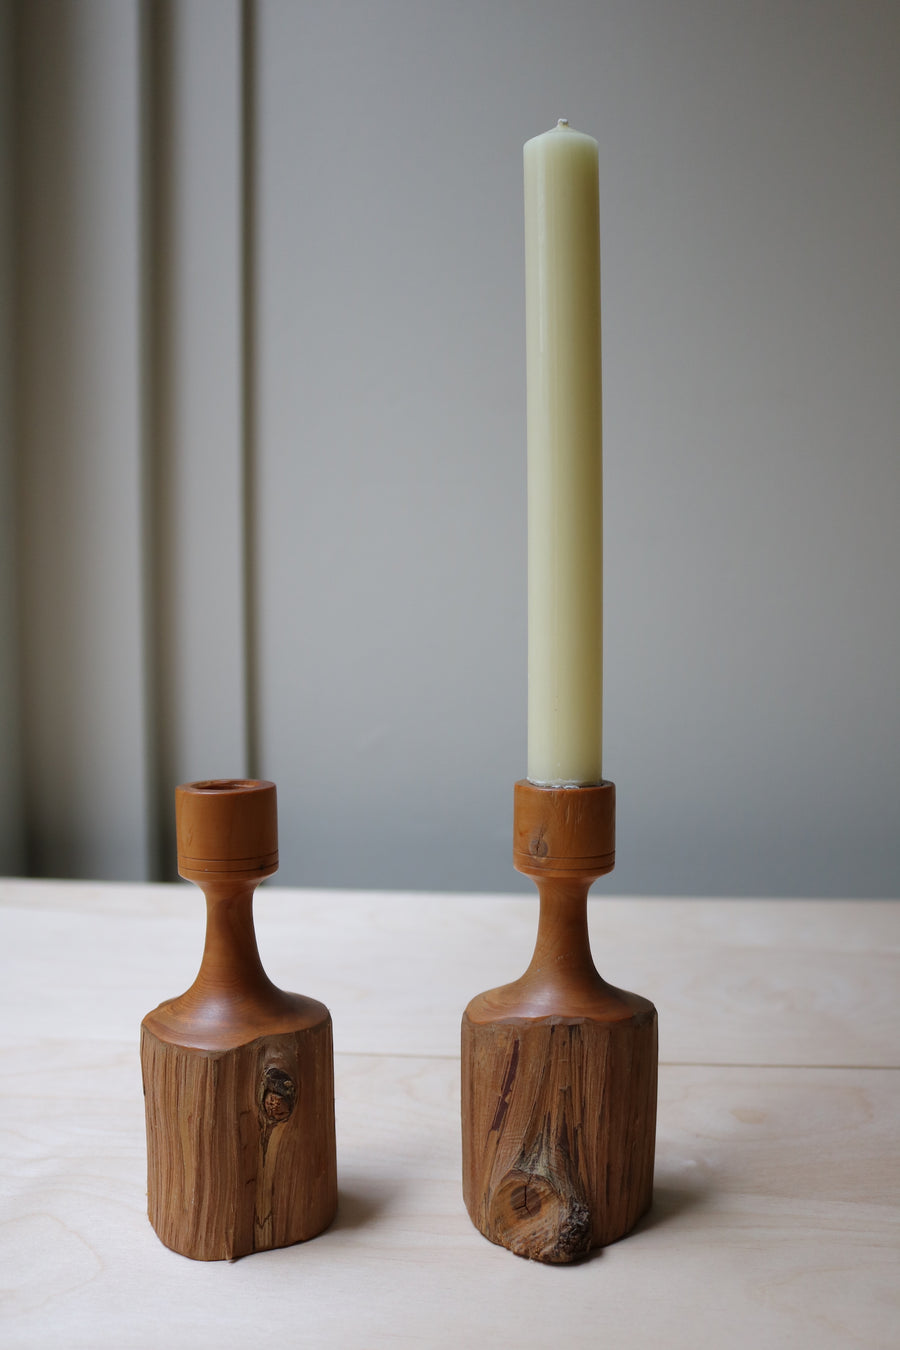 Brutalist wood candle holders - Form + Beyond graphic mirrors & wall art gallery london